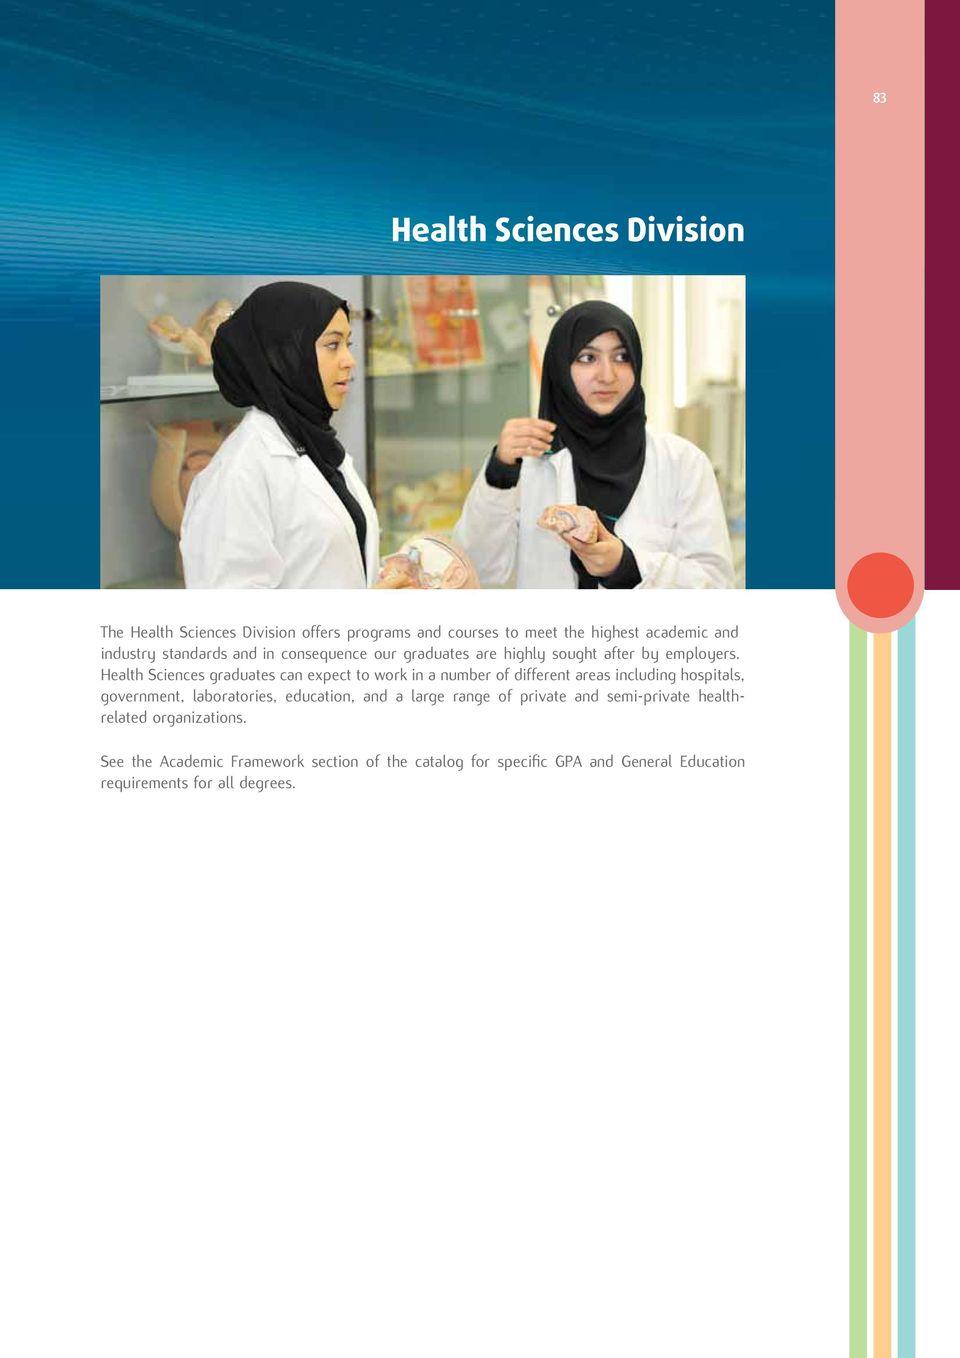 Health Sciences graduates can expect to work in a number of different areas including hospitals, government,